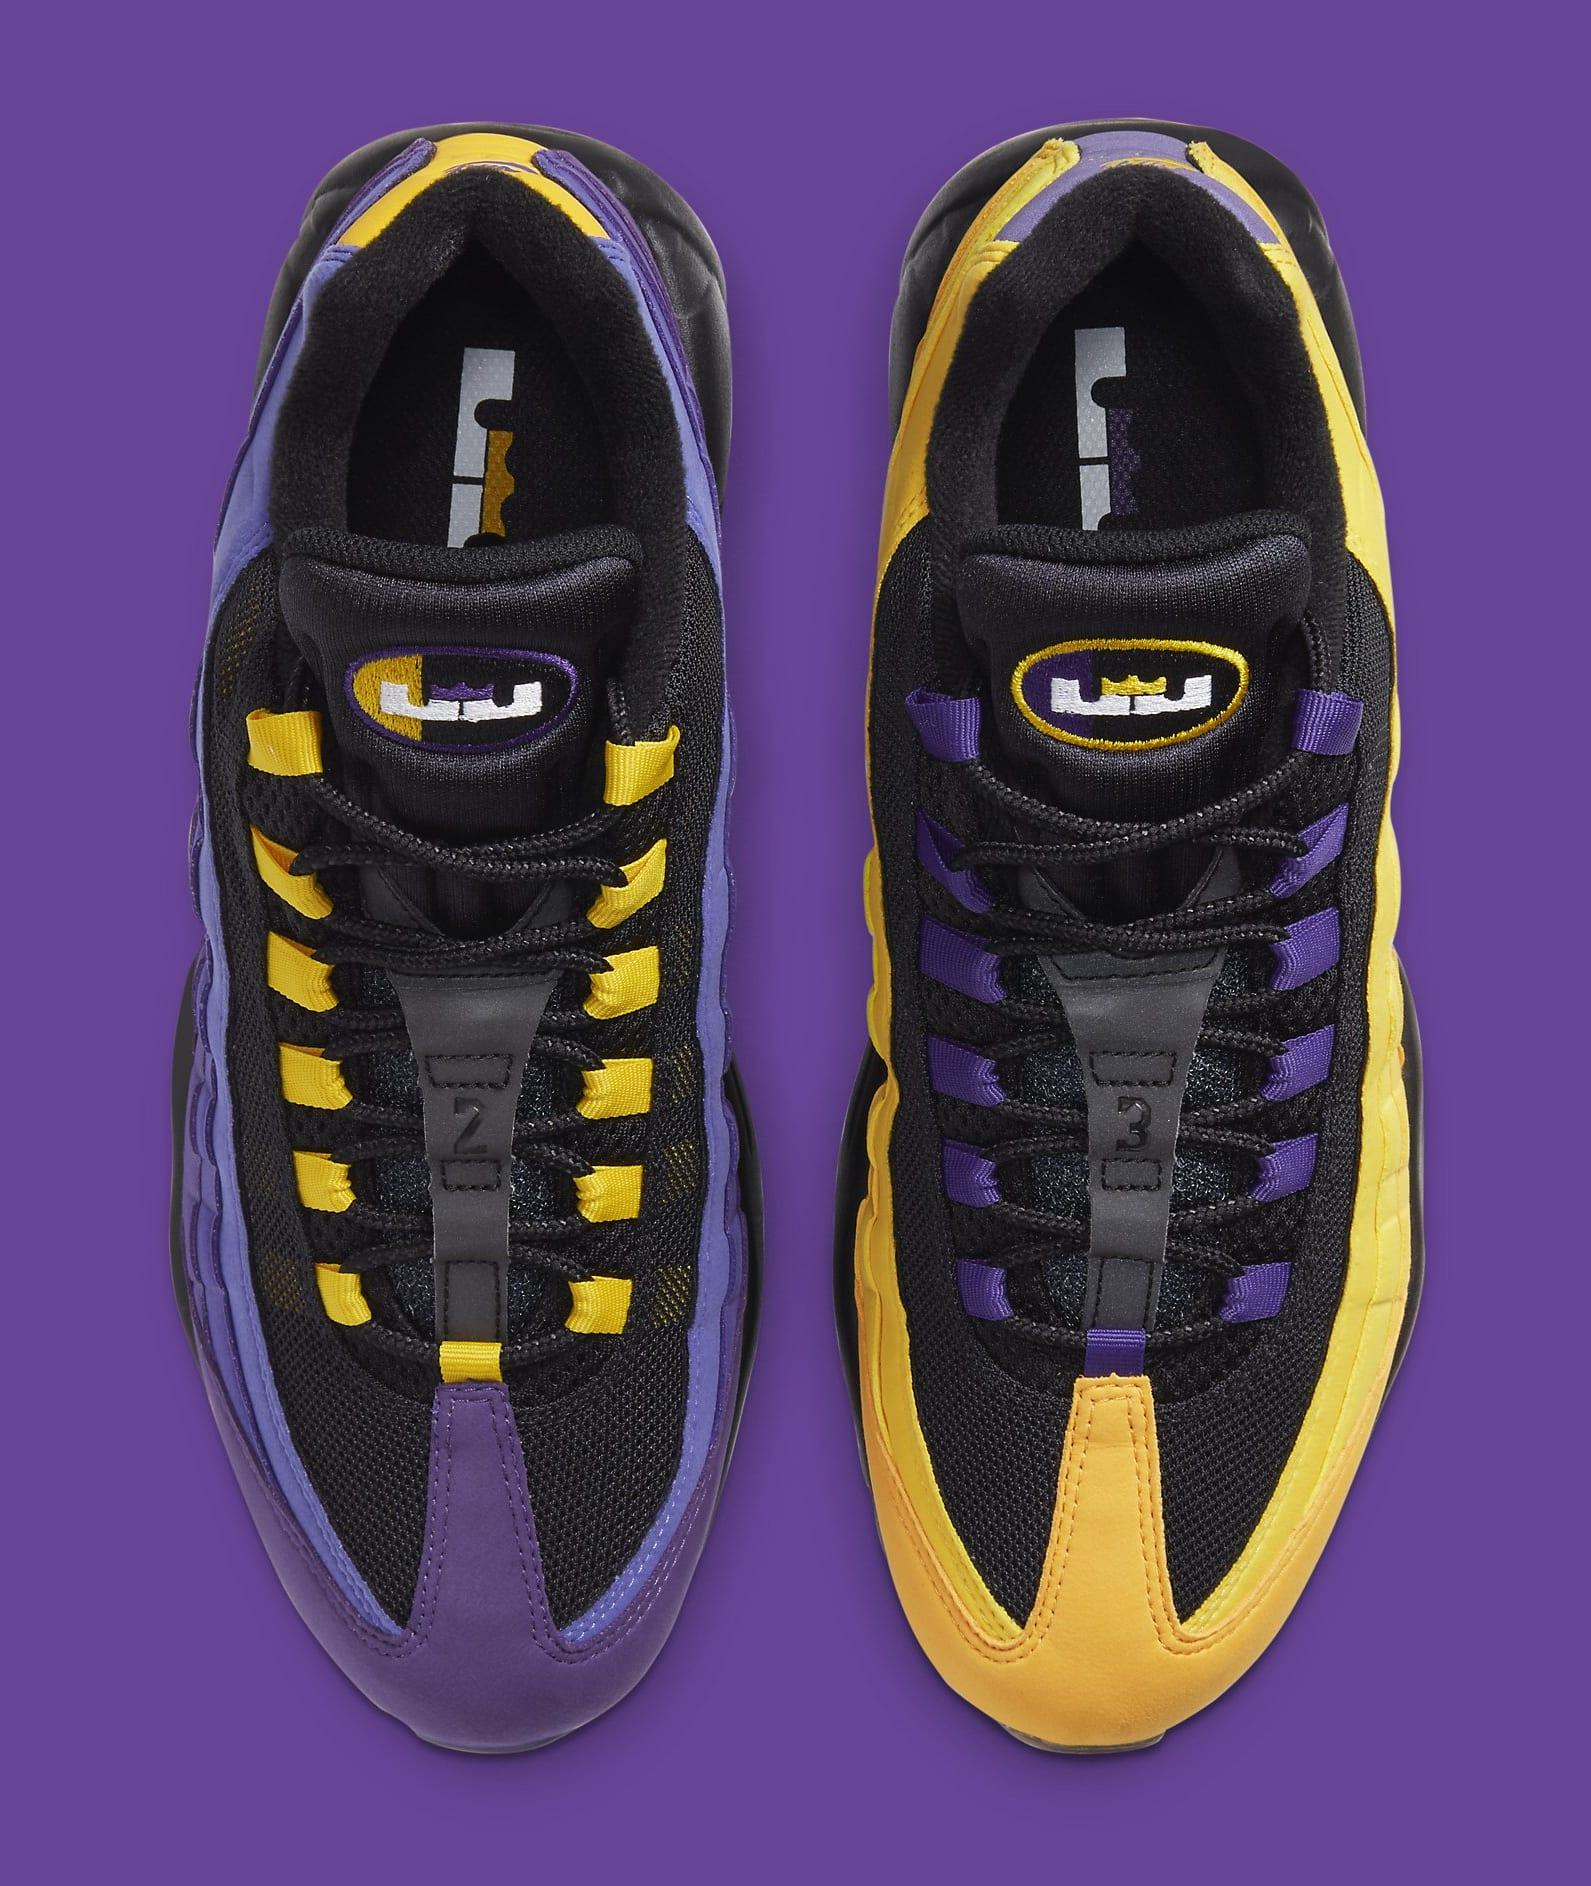 Nike Air Max 95 LeBron Lakers Release Date CZ3624-001 | Sole Collector